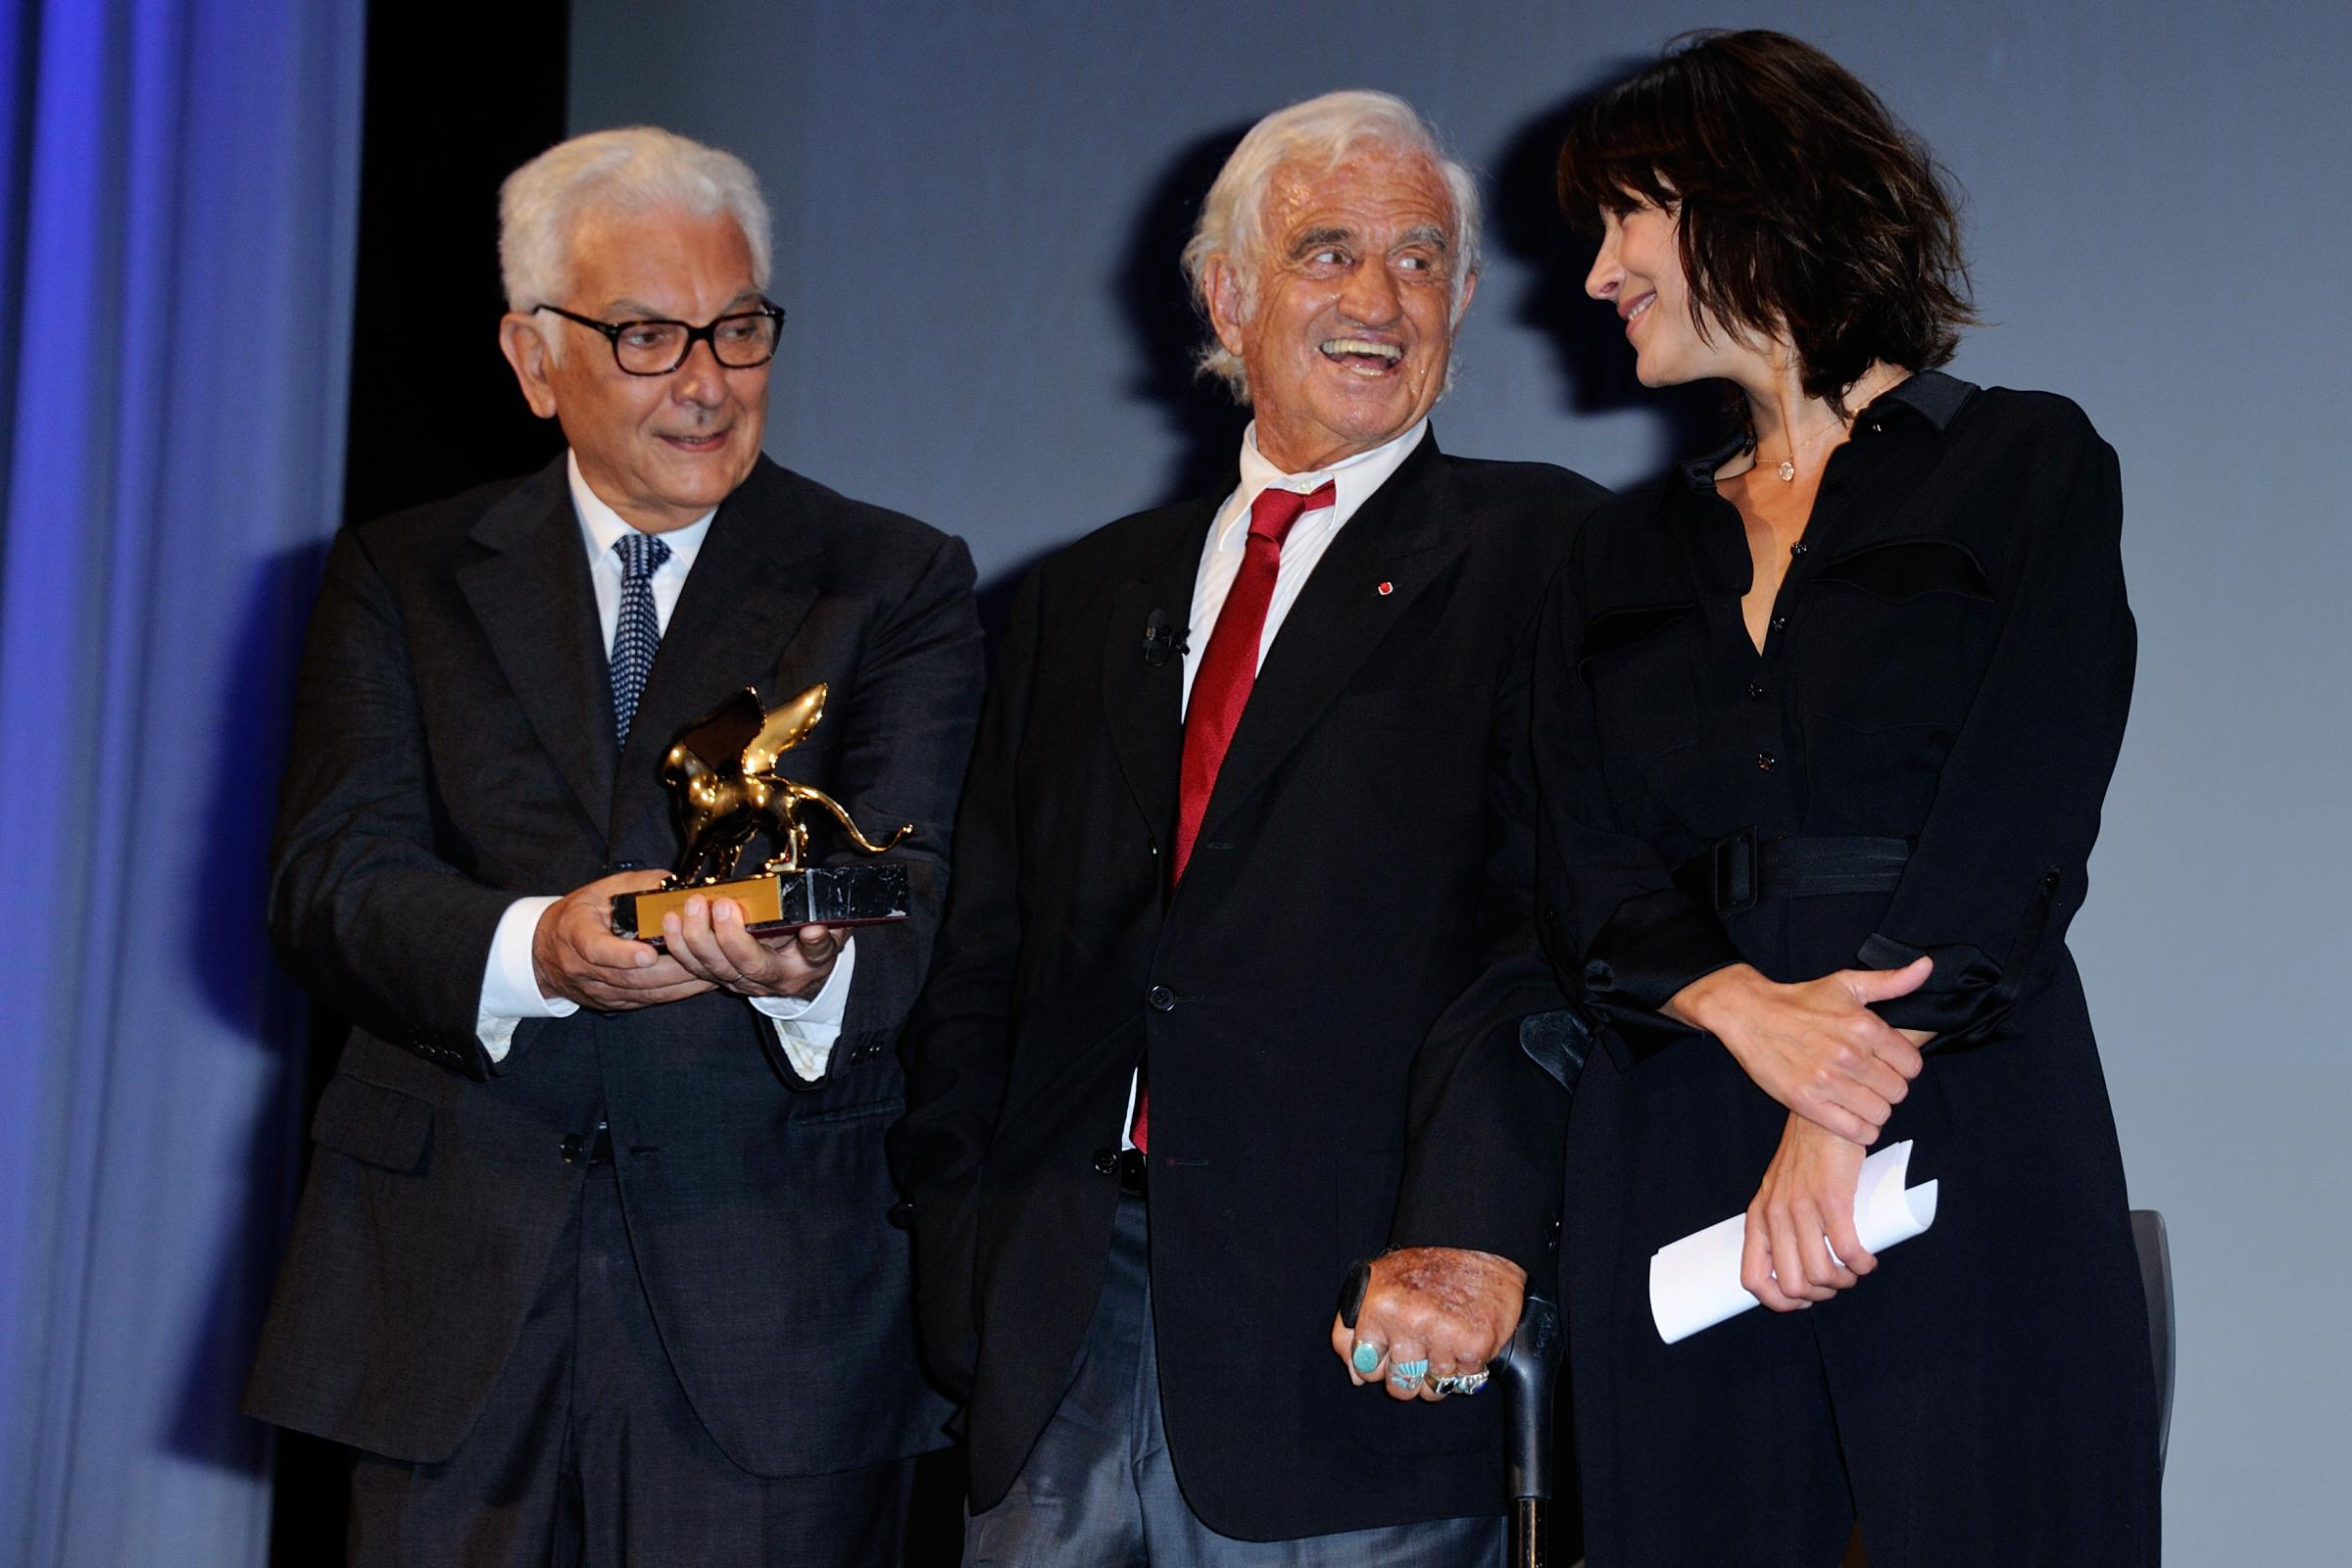 Paolo Baratta, Jean-Paul Belmondo and Sophie Marceau attending the Ceremony awarding him with the Golden Lion for Career ('Leon d'Oro alla Carriera') on the Lido in Venice, Italy as part of the 73rd Mostra, Venice International Film Festival on September 08, 2016. Photo by Aurore Marechal/ABACAPRESS.COM LaPresse Only italyVenezia : Paul Belmondo riceve il Leone d'Oro alla Carriera562125